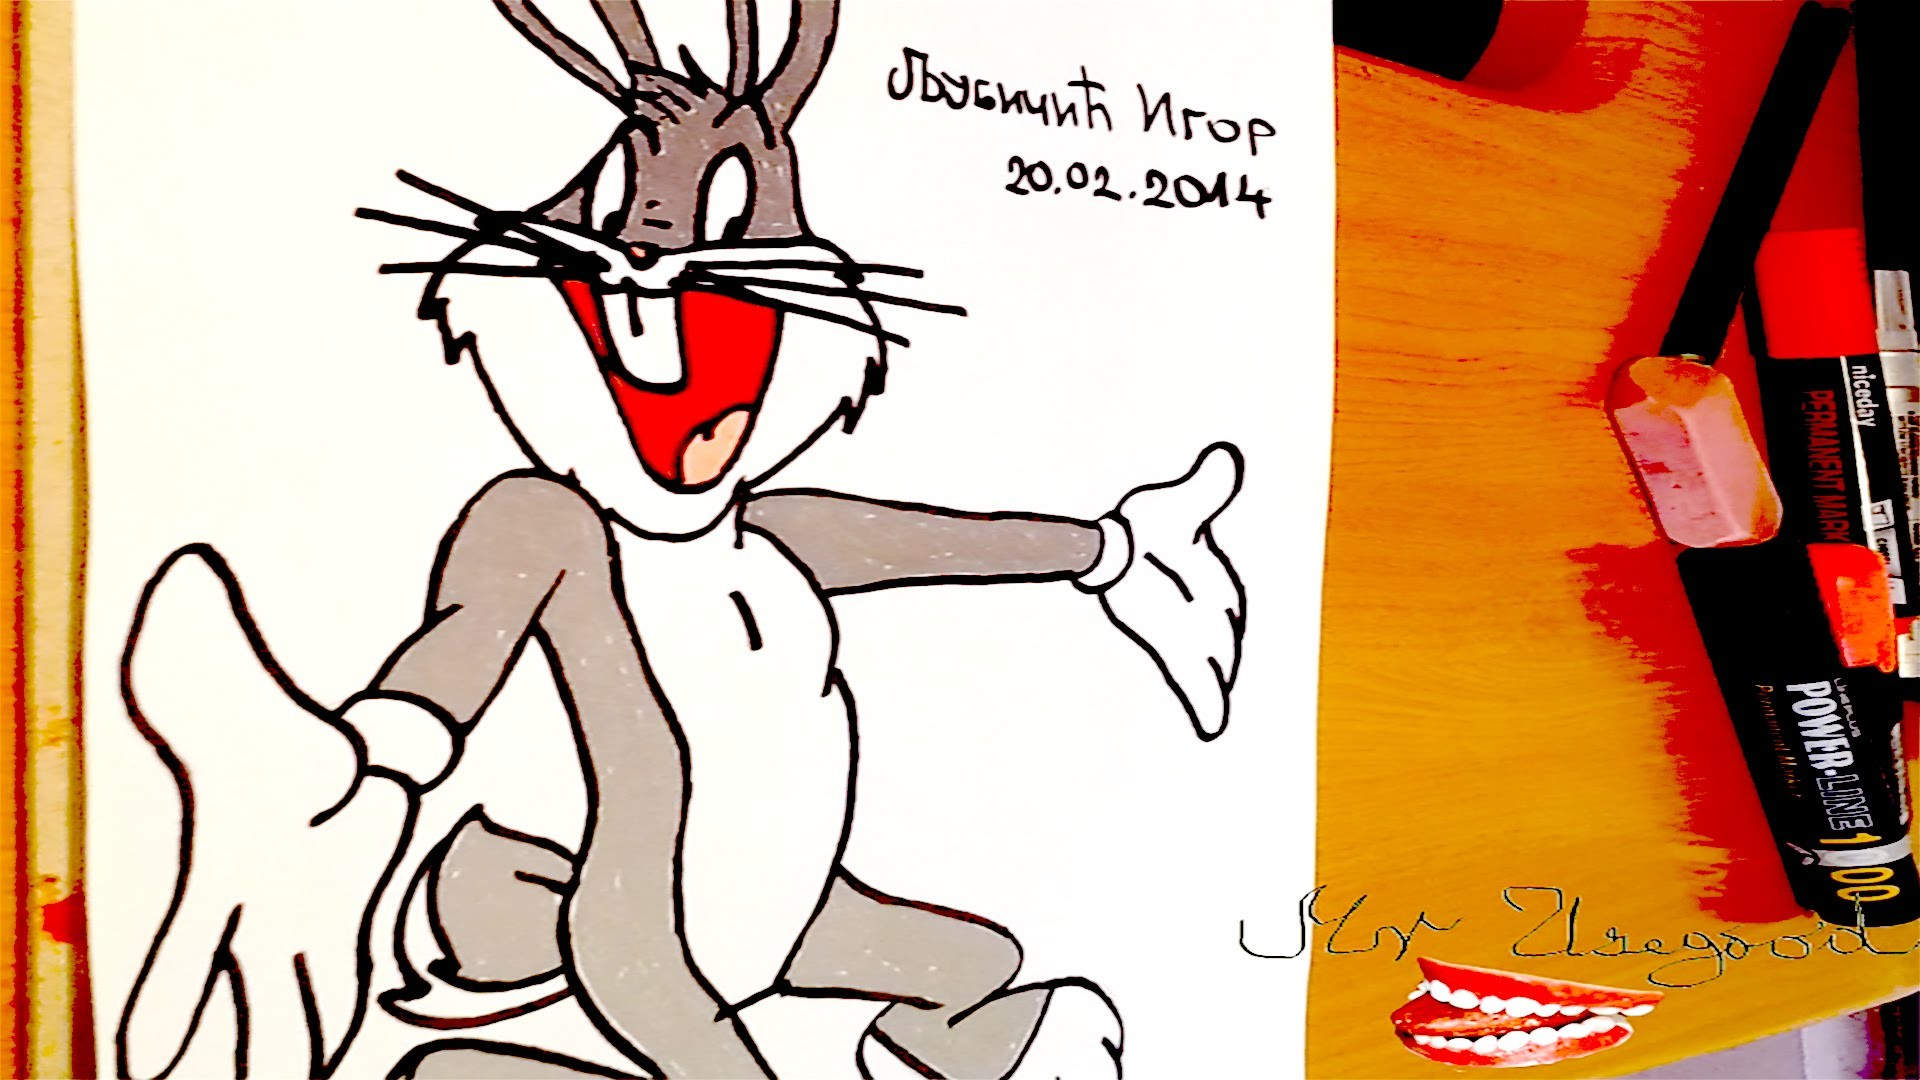 DIY How to draw Bugs Bunny Full Body Easy, draw easy stuff.things but cool on paper | SPEED ART